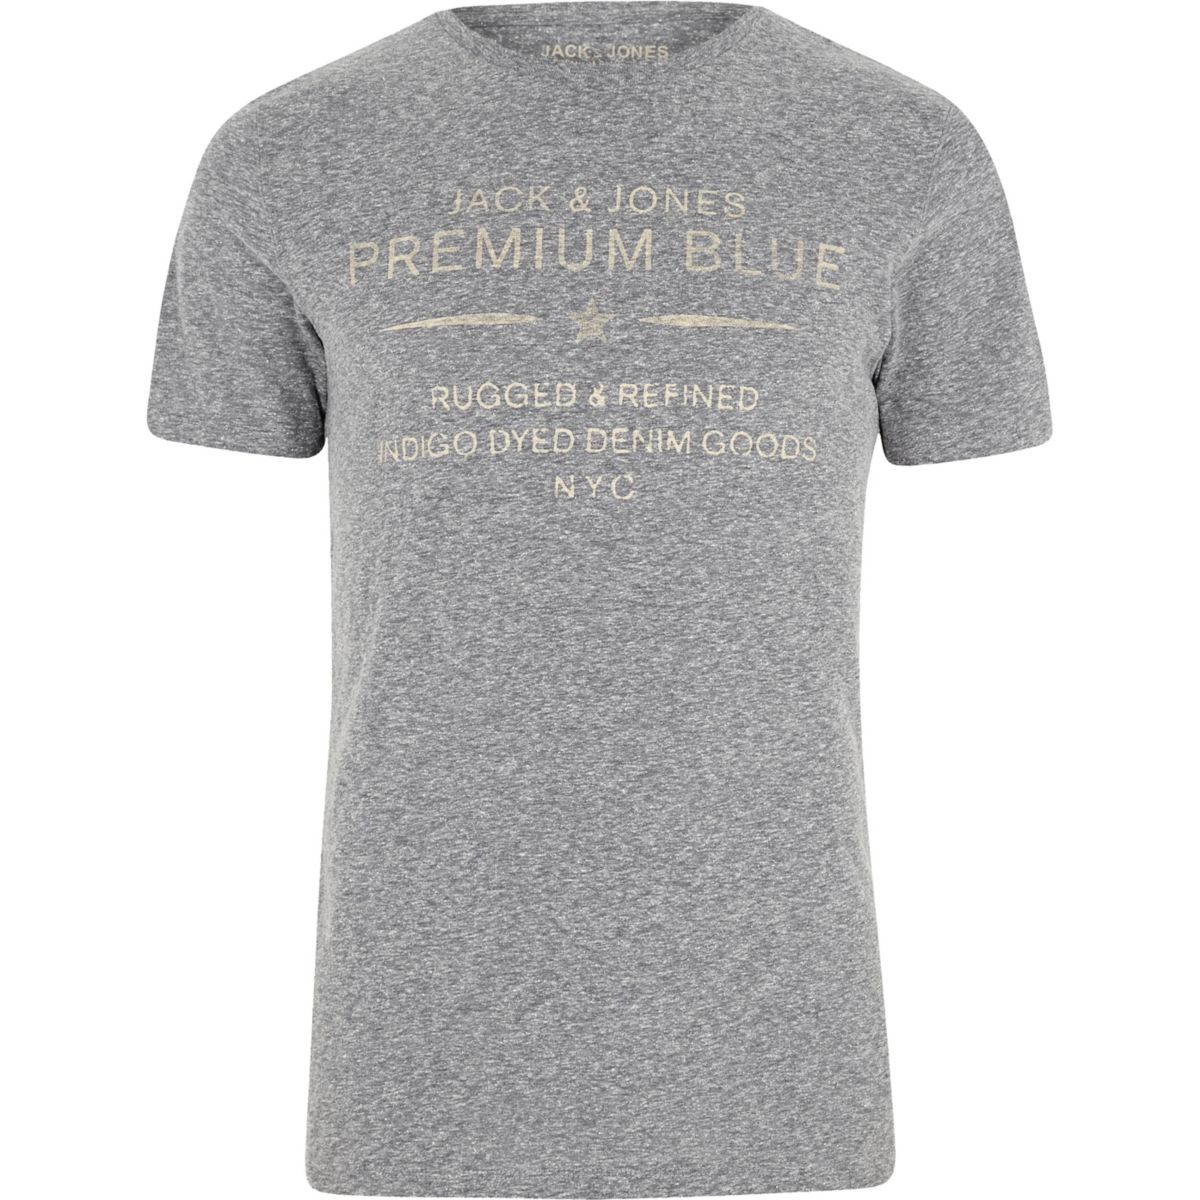 White Jack & Jones 'Premium' print T-shirt